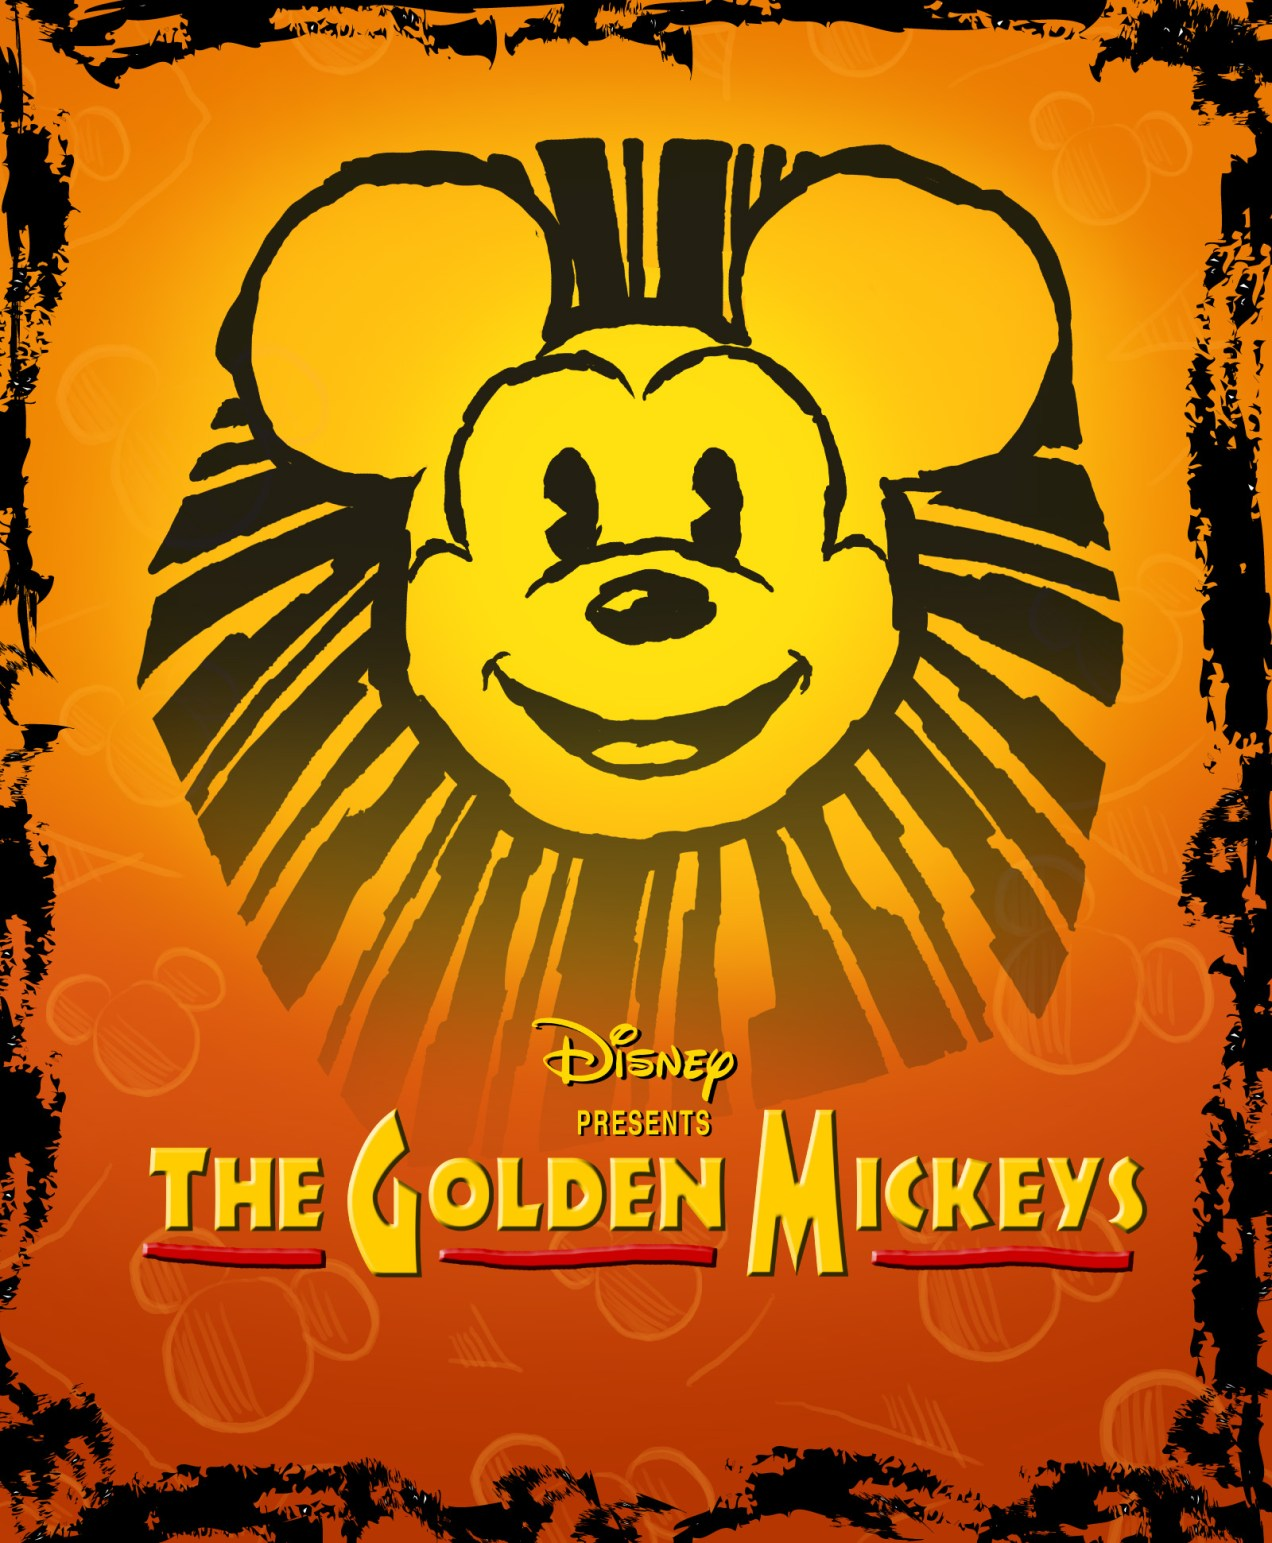 Golden Mickeys Poster